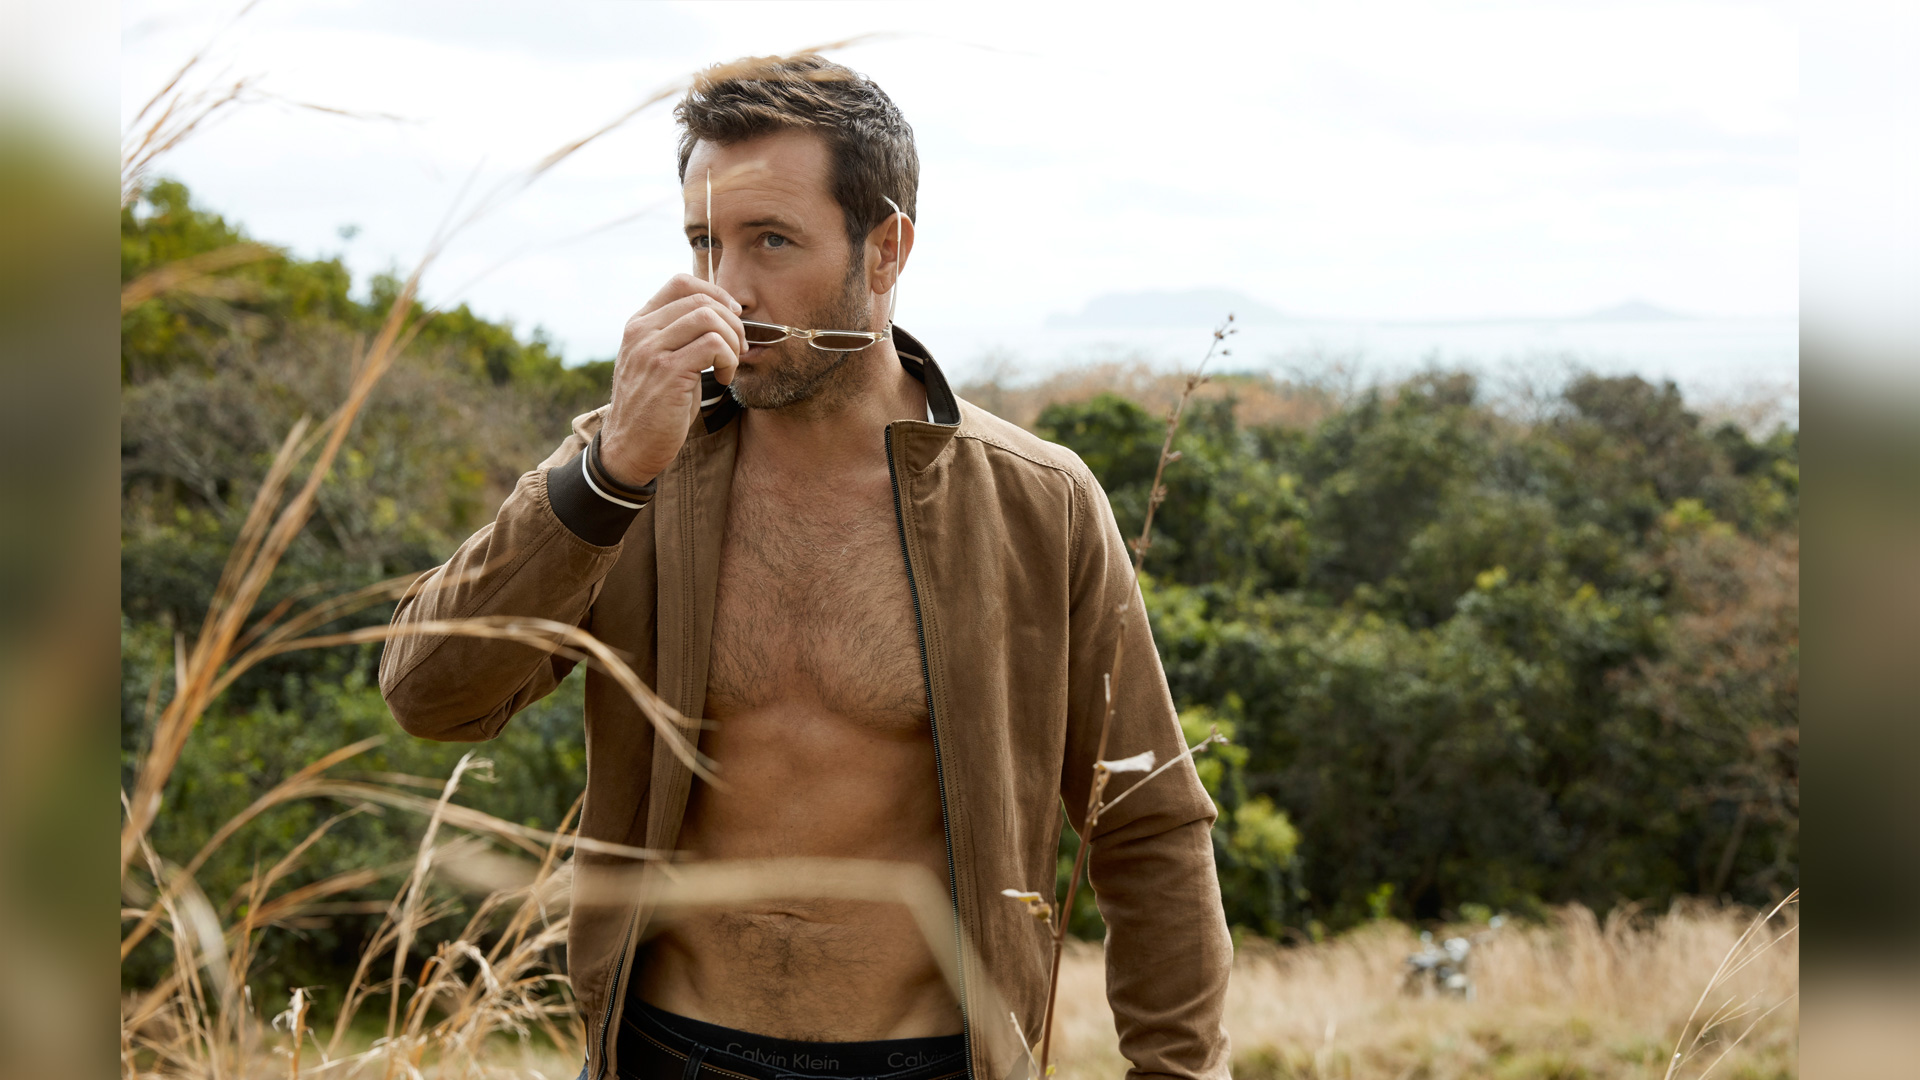 Hawaii Five-0 star Alex O'Loughlin shows off his rugged good looks in these gorgeous photos